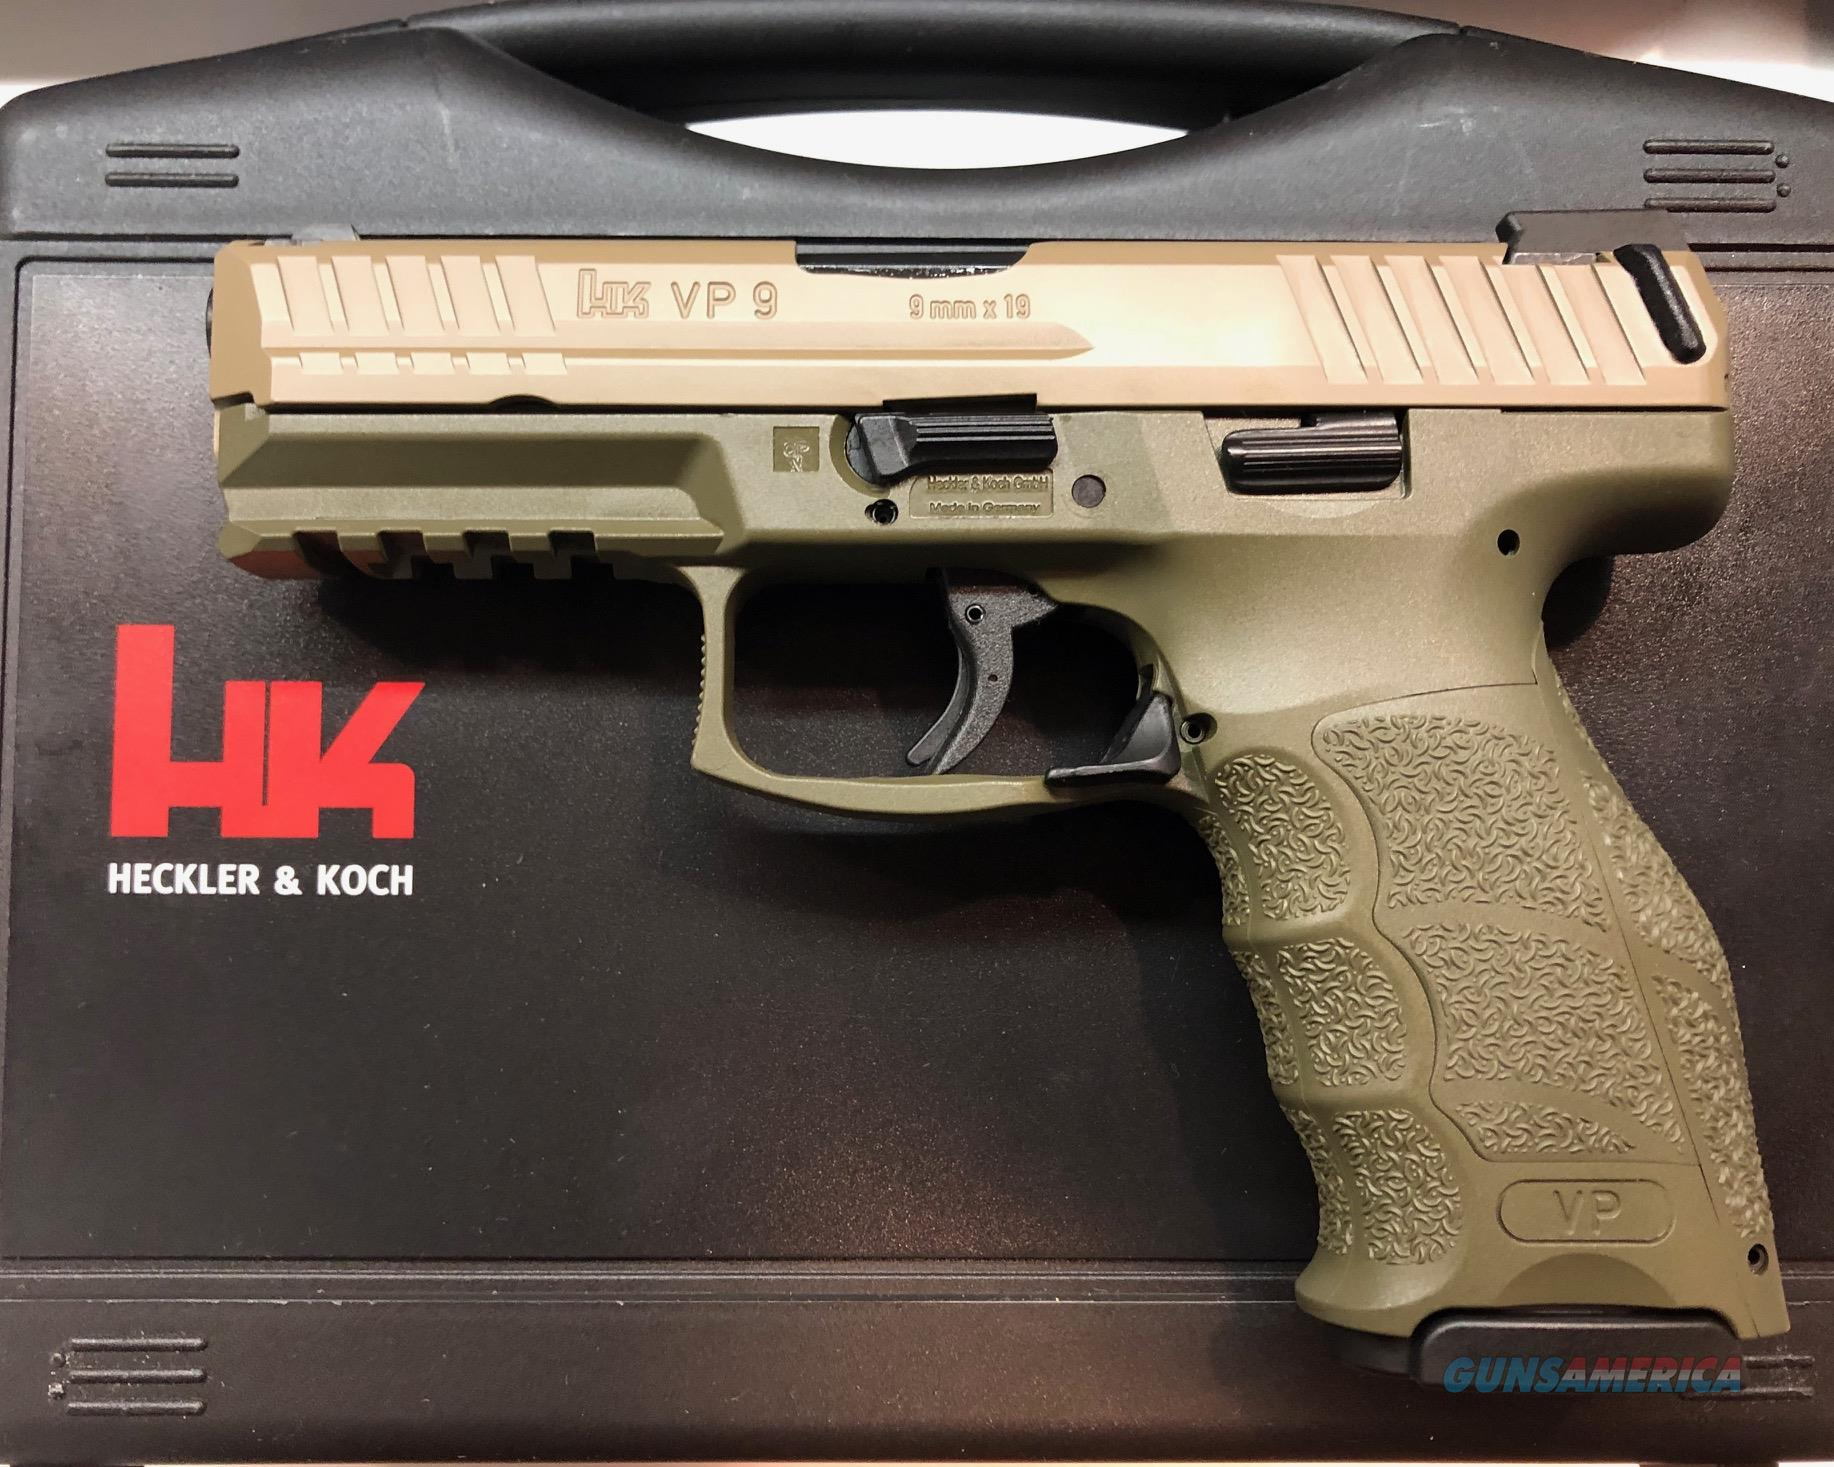 New Heckler & Koch HK VP9 9mm Night Sights 3-15 Round Mags OD Green / FDE   Guns > Pistols > Heckler & Koch Pistols > Polymer Frame